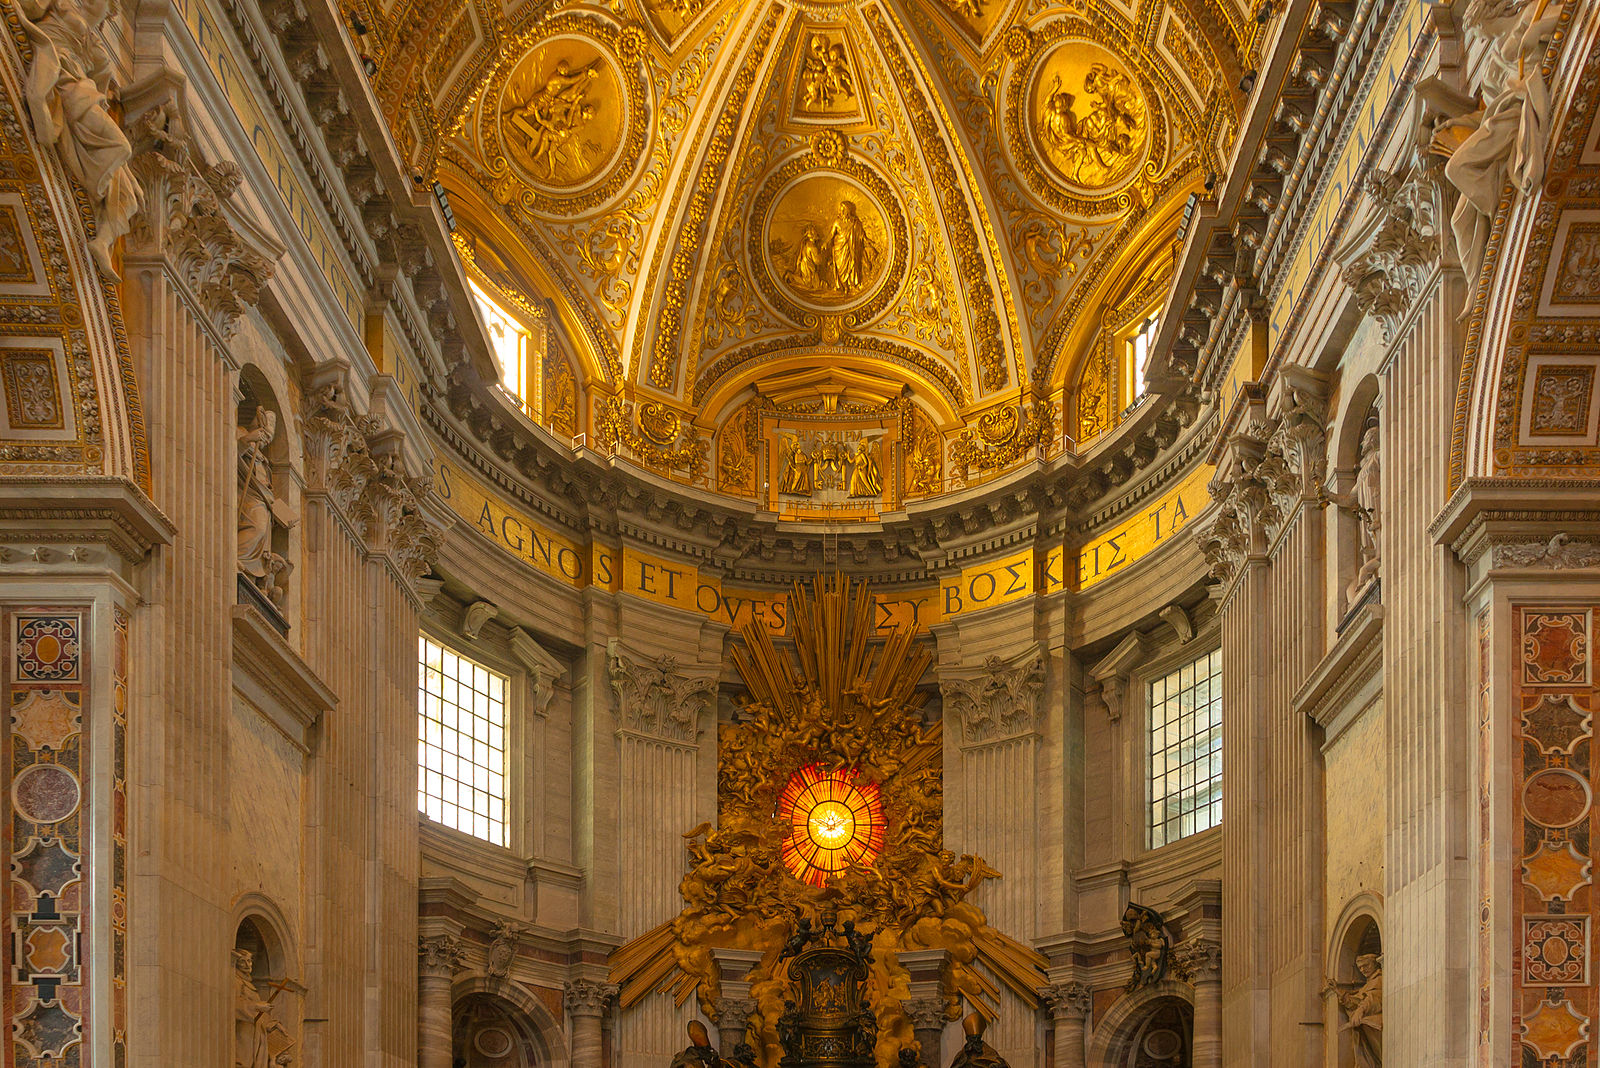 12 architects of st peter s basilica St peter's basilica situated in vatican city,  adorned with the miraculous touch of the greatest italian architects of the late renaissance era,  october 12.